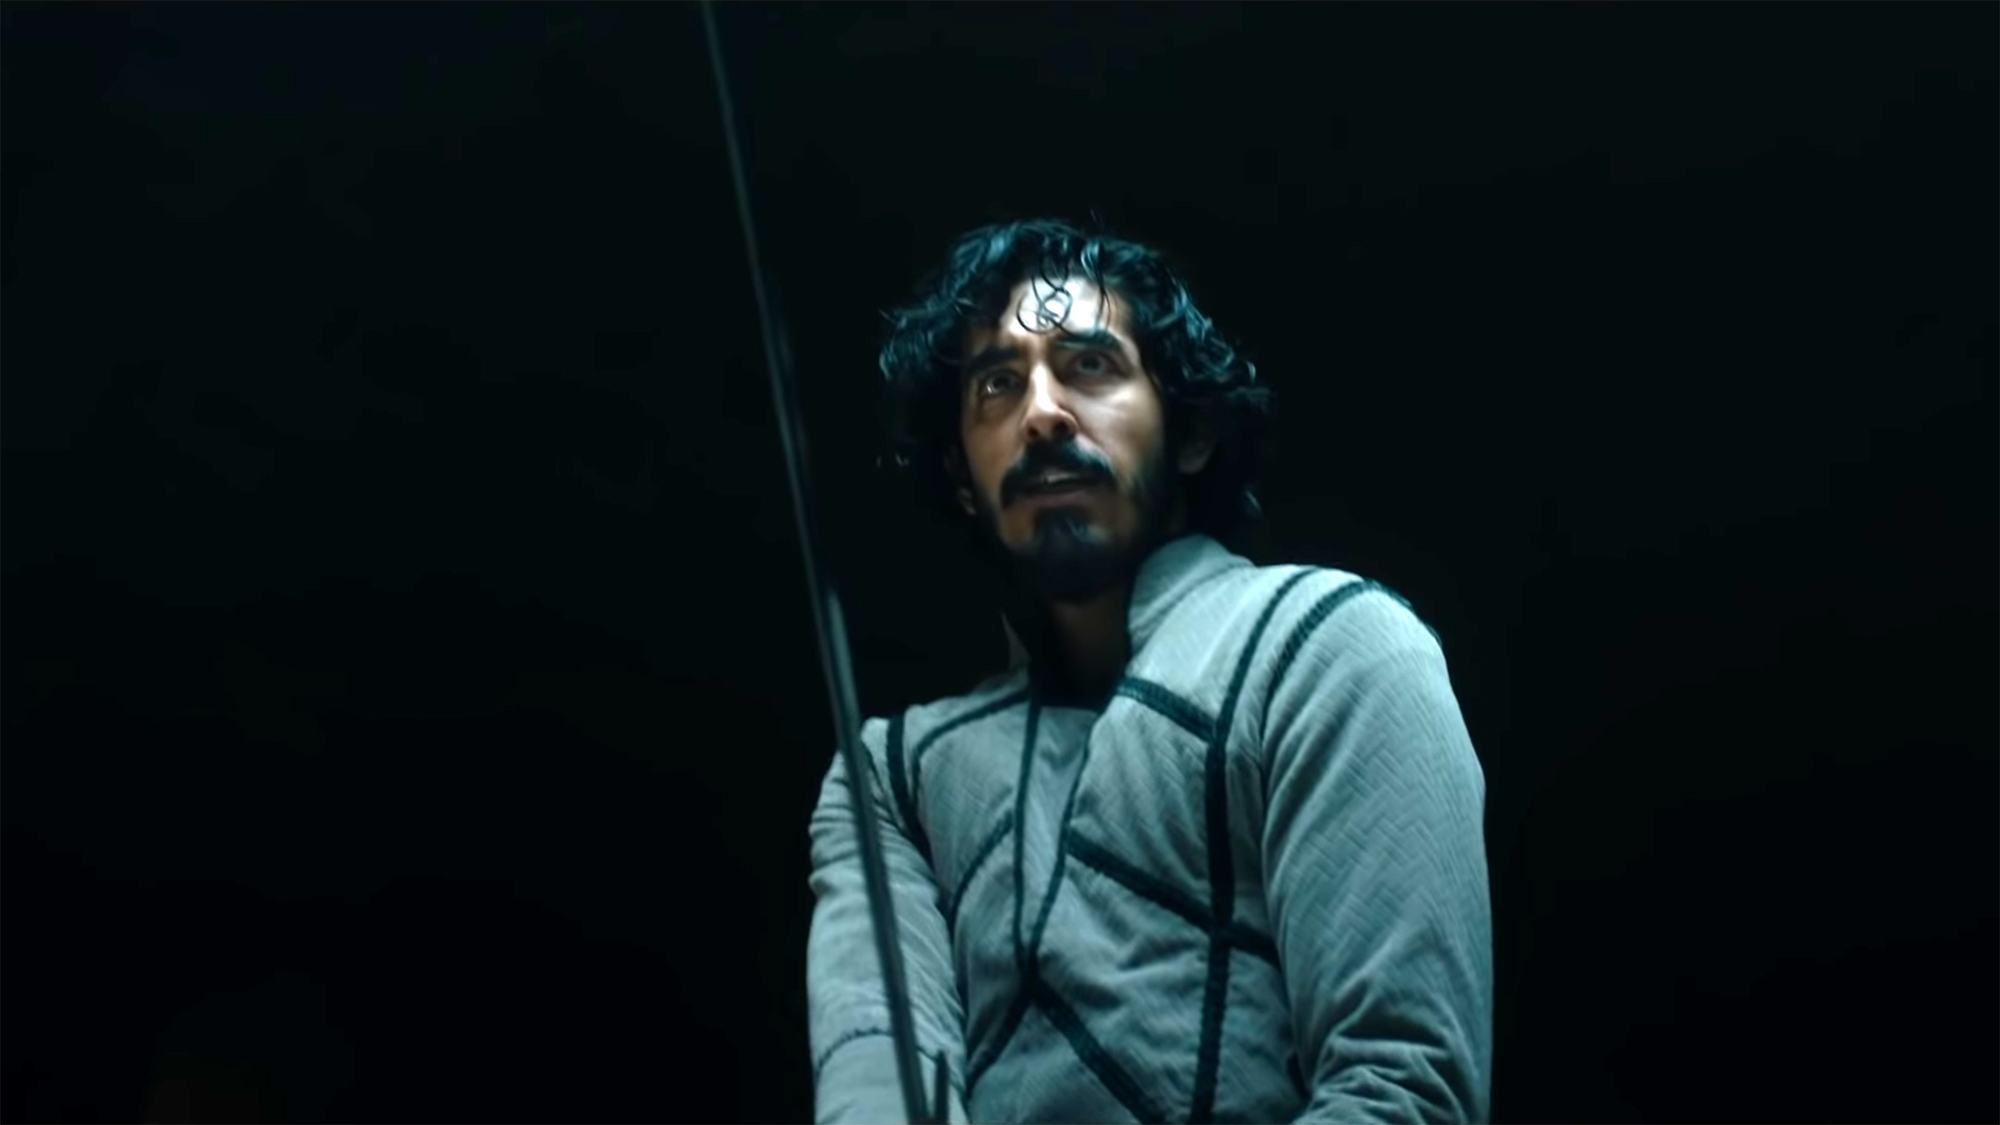 Dev Patel Suits Up for Arthurian Quest in New Trailer for 'The Green Knight'